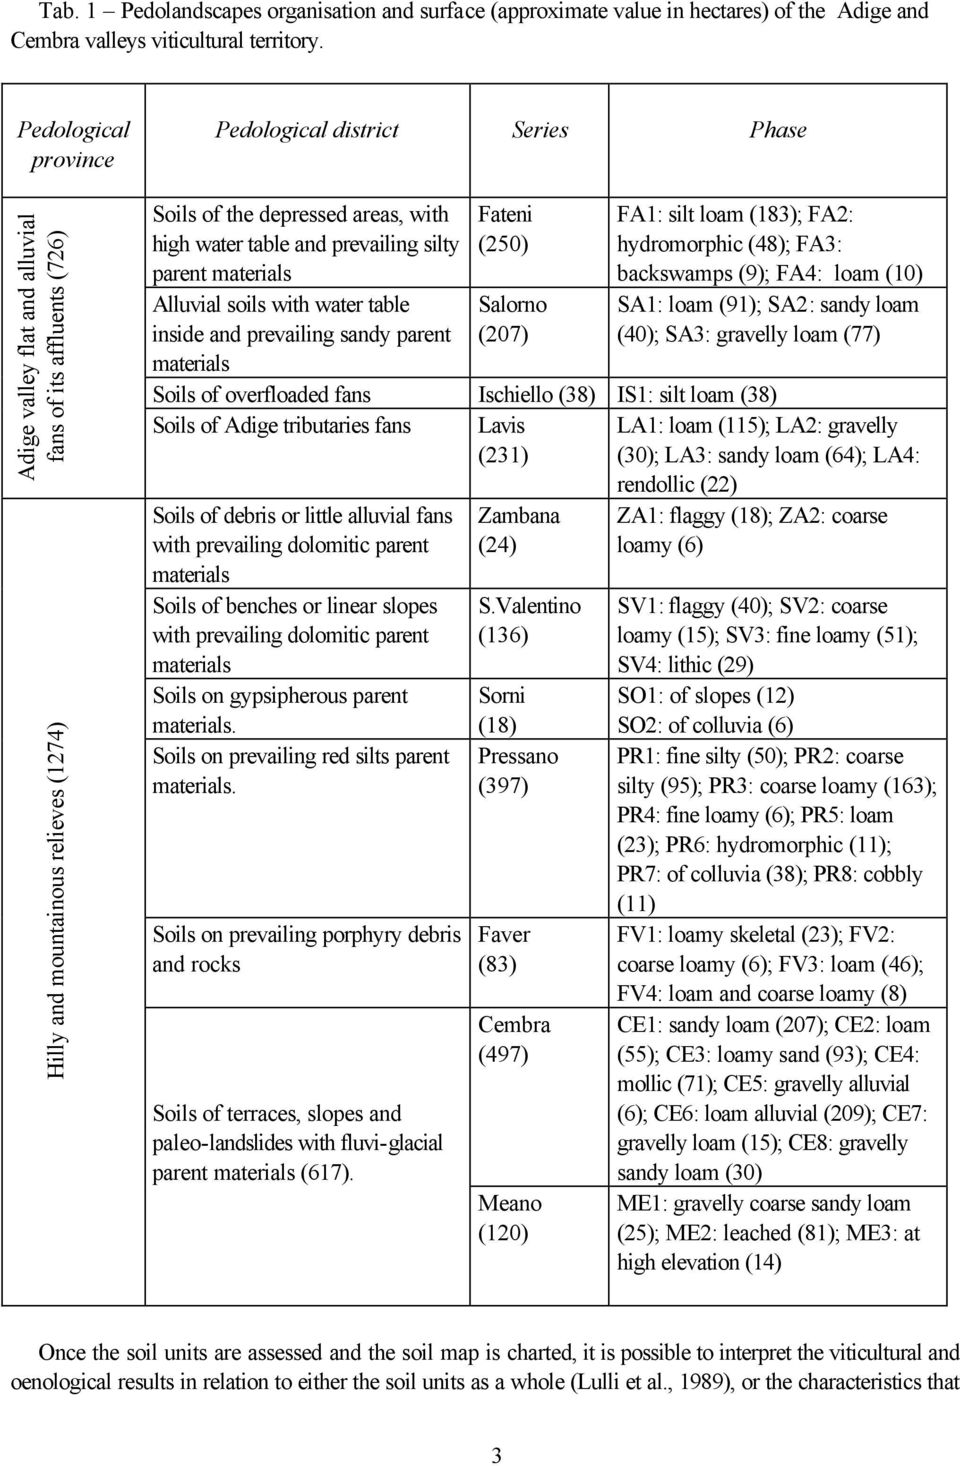 table and prevailing silty parent materials Alluvial soils with water table inside and prevailing sandy parent materials Fateni (250) Salorno (207) FA1: silt loam (183); FA2: hydromorphic (48); FA3: